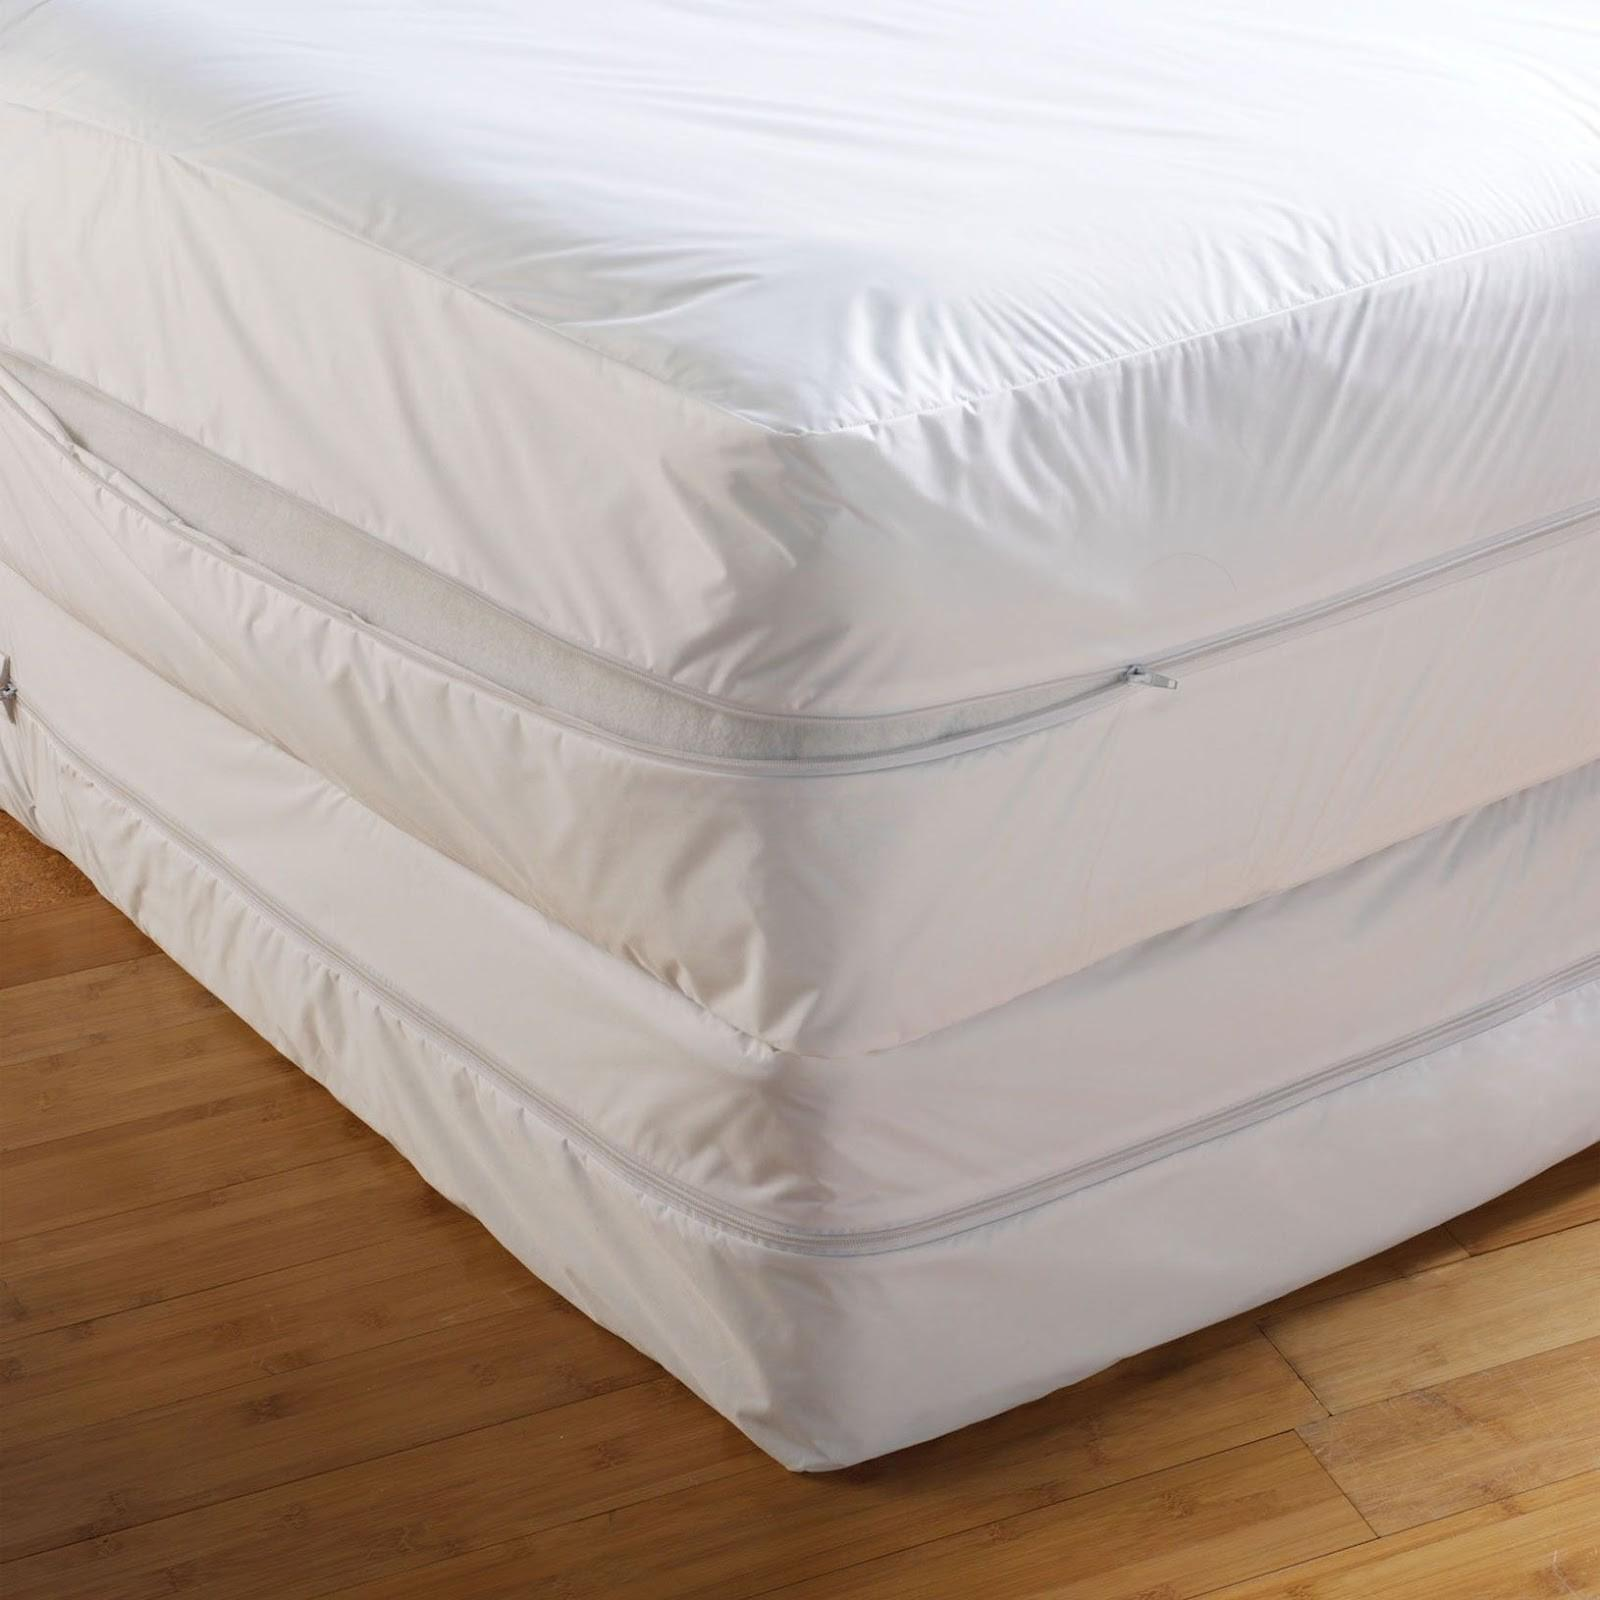 Bed Bug Mattress Cover Best Defense Preventing